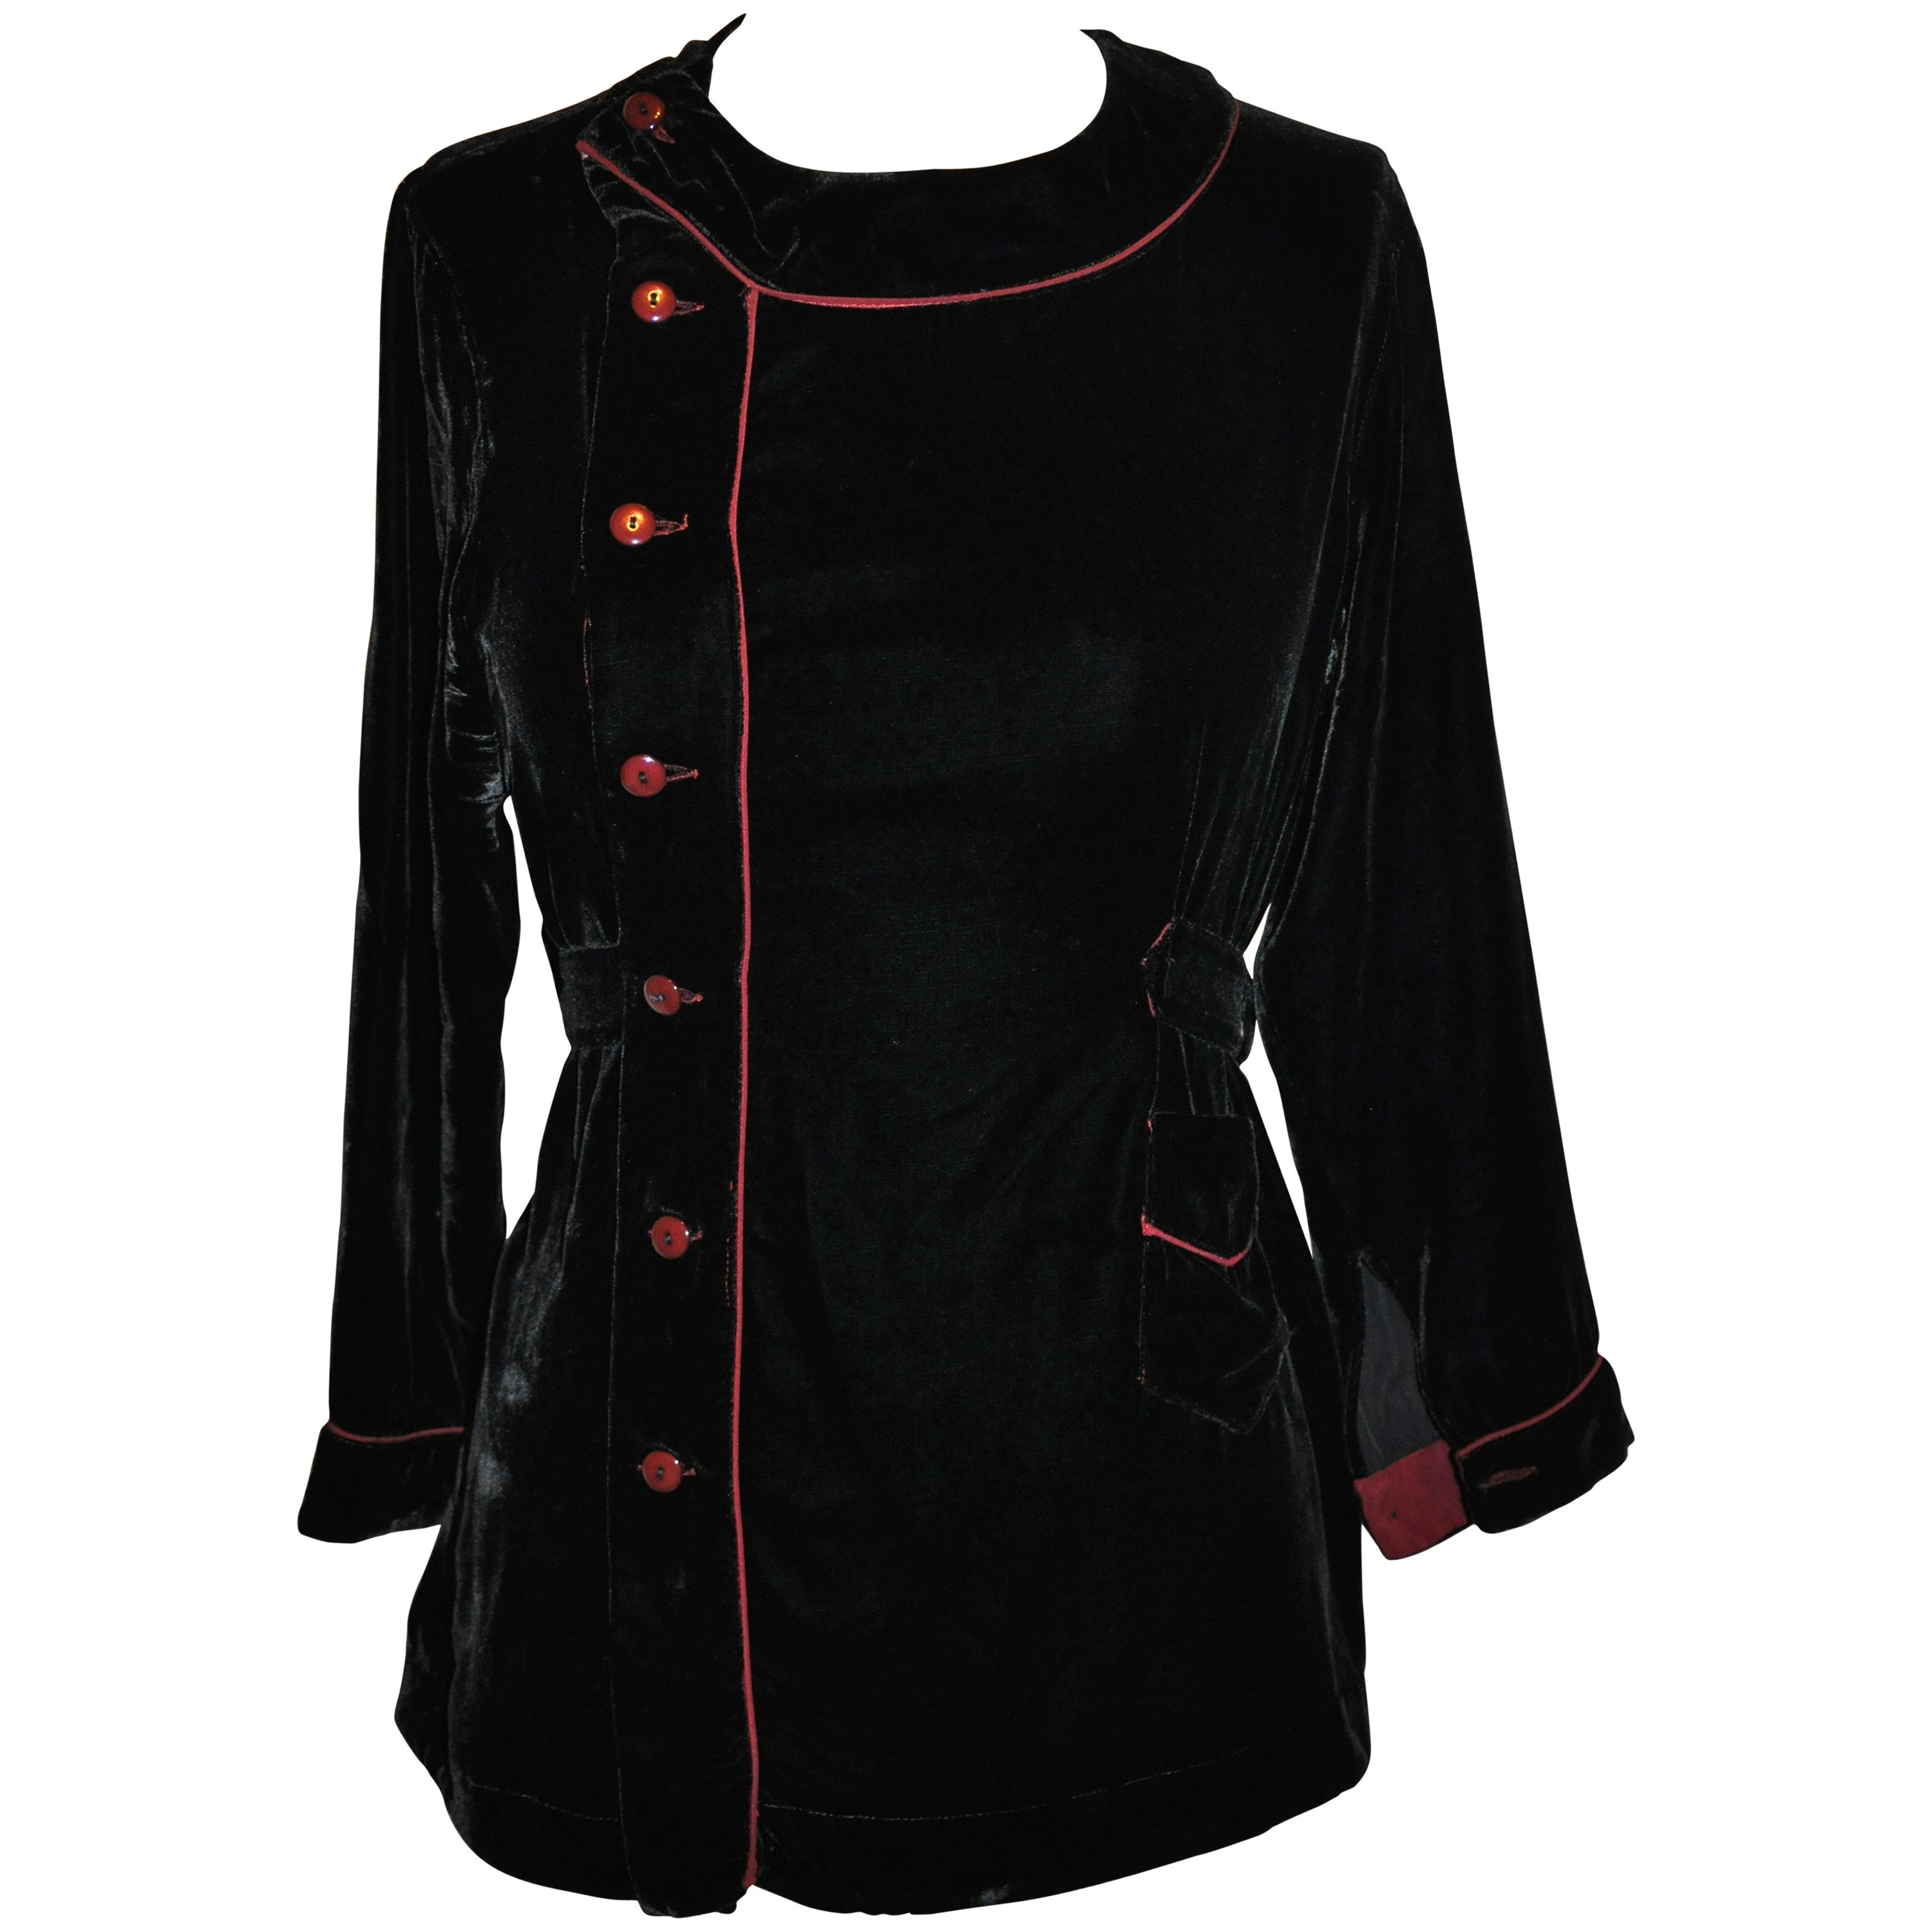 Jean Paul Gaultier Black Velvet with Piping Button Top